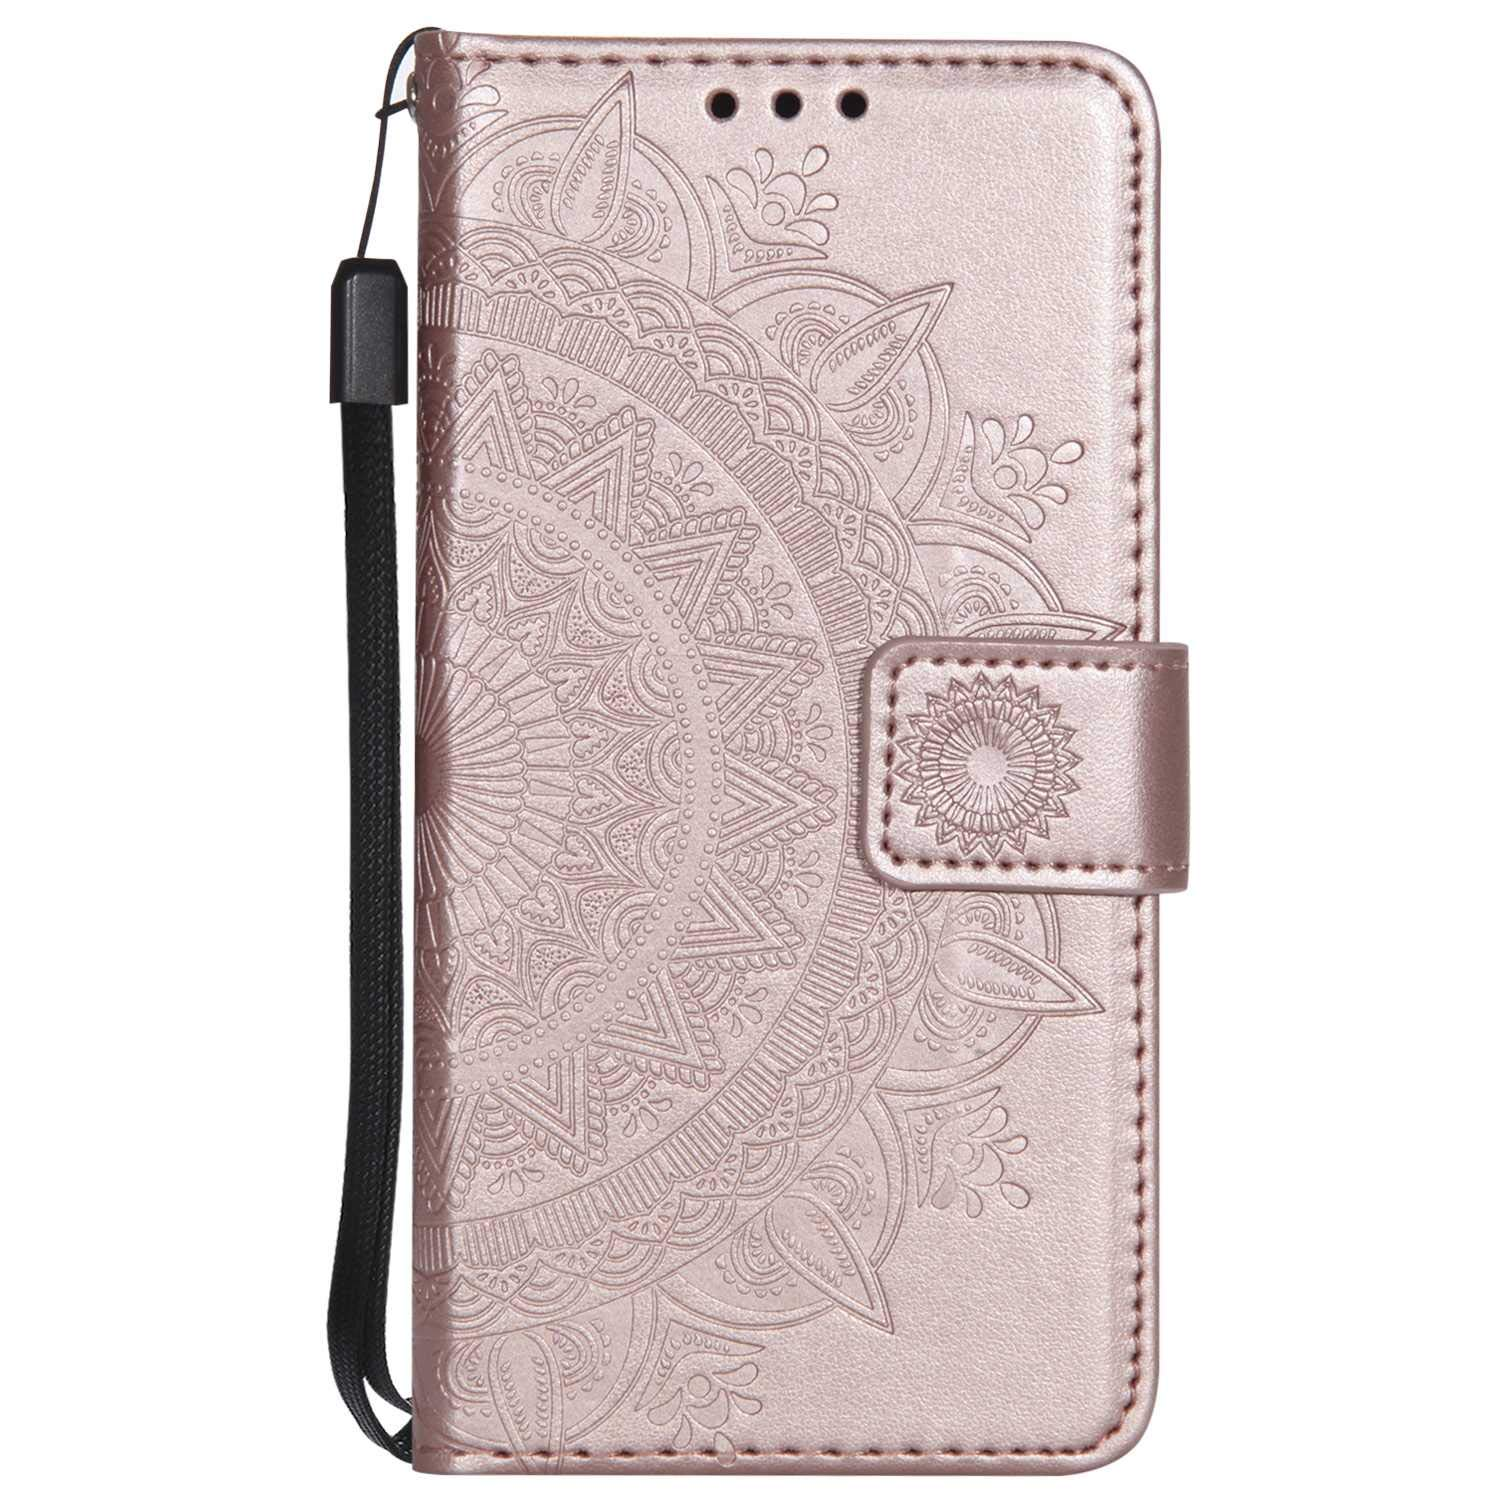 iPhone 7 8 Case, The Grafu Leather Case, Premium Wallet Case with [Card Slots] [Kickstand Function] Flip Notebook Cover for Apple iPhone 7/8, Rose Gold